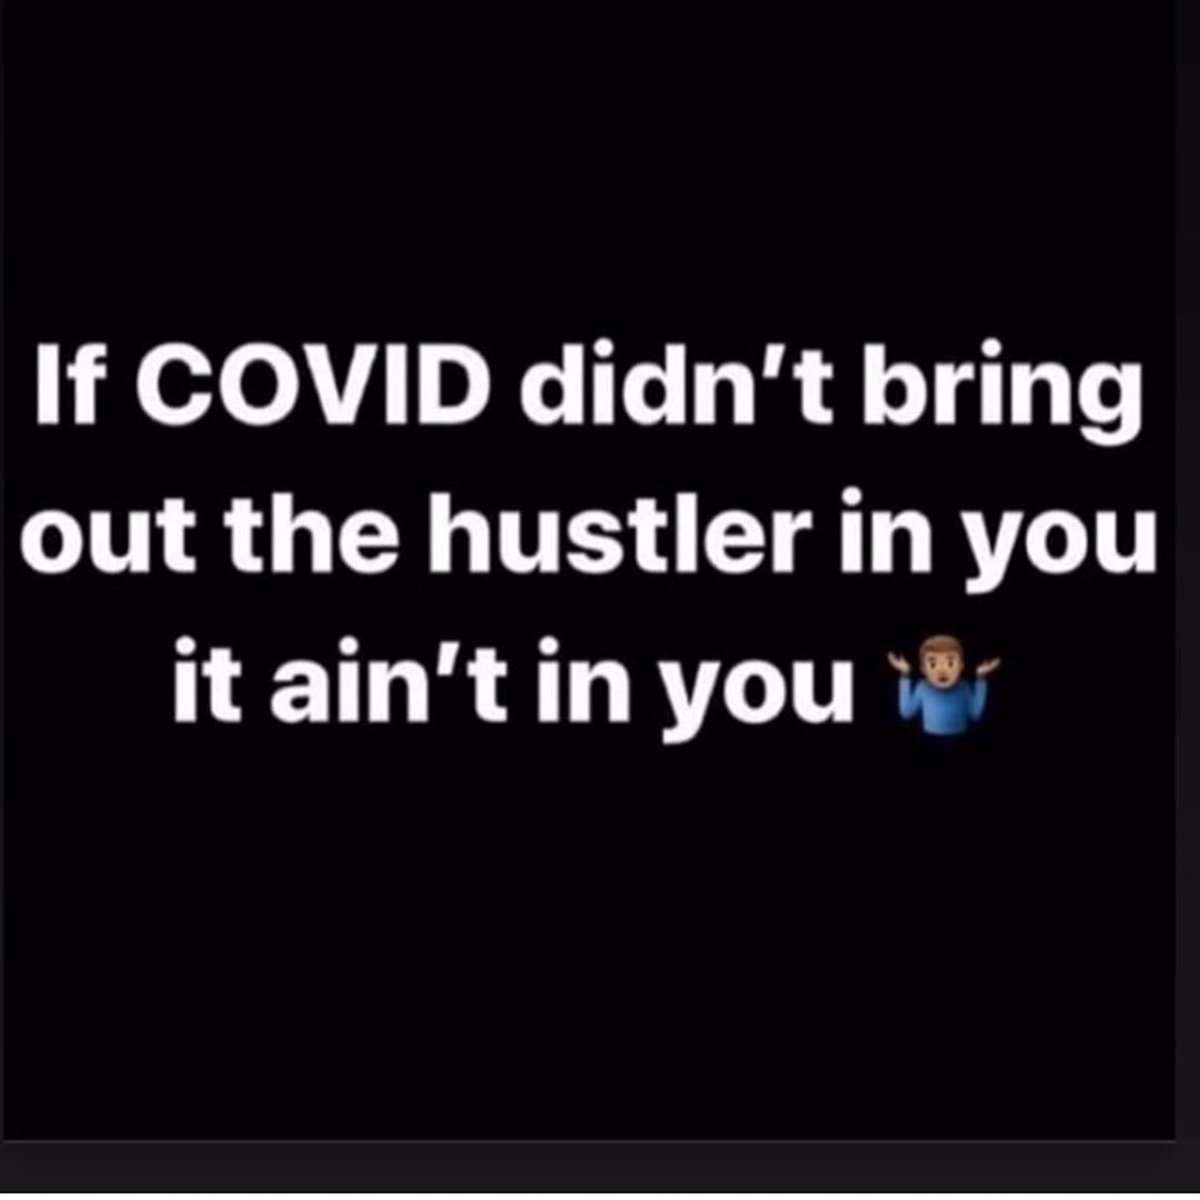 If COVID didn't bring out the hustler in you, it ain't in you! https://t.co/C3VP5sDrtQ